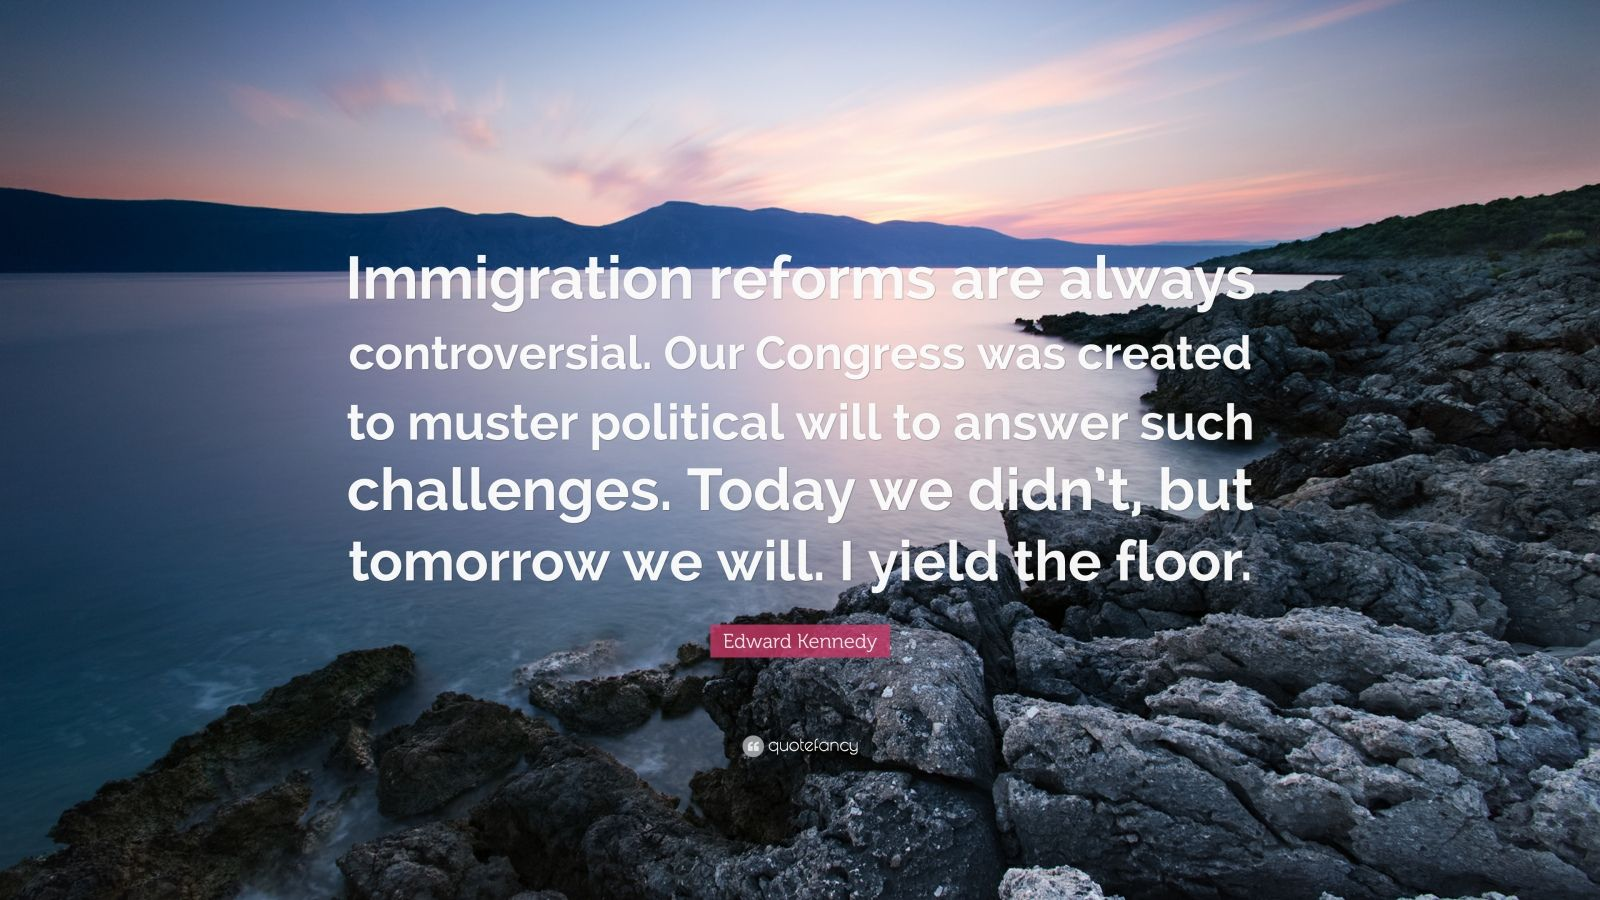 """Edward Kennedy Quote: """"Immigration reforms are always controversial. Our Congress was created to muster political will to answer such challenges. Today we didn't, but tomorrow we will. I yield the floor."""""""